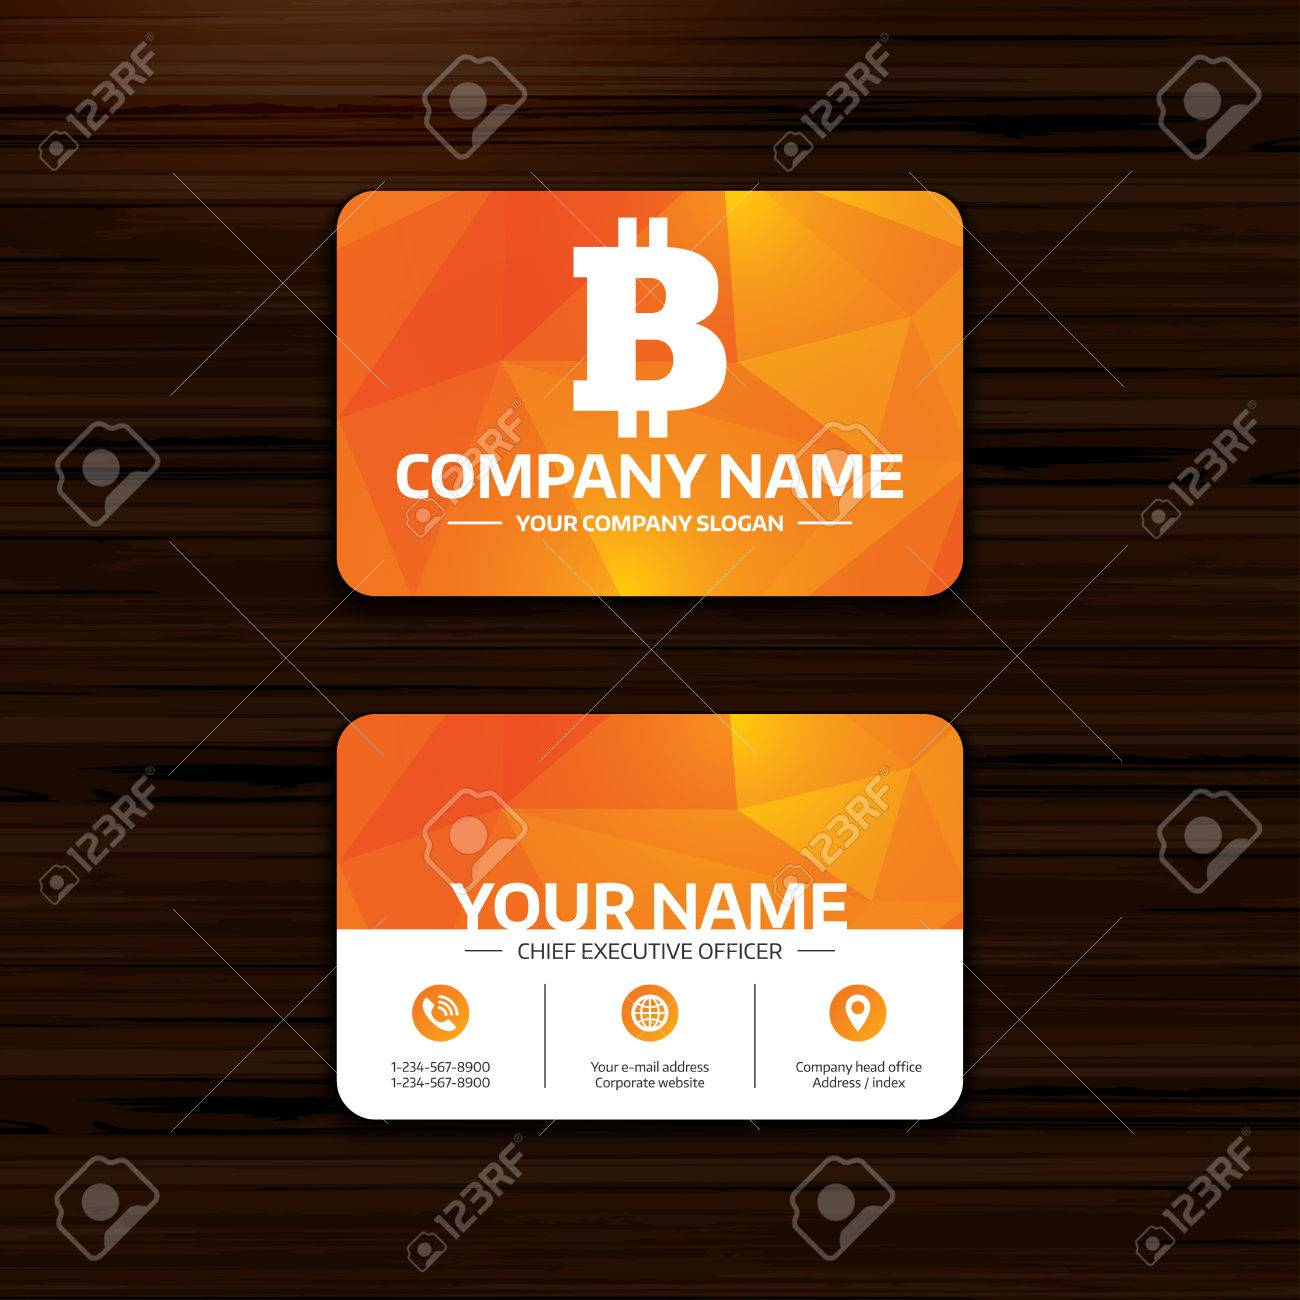 Business or visiting card template bitcoin sign icon cryptography business or visiting card template bitcoin sign icon cryptography currency symbol p2p reheart Gallery